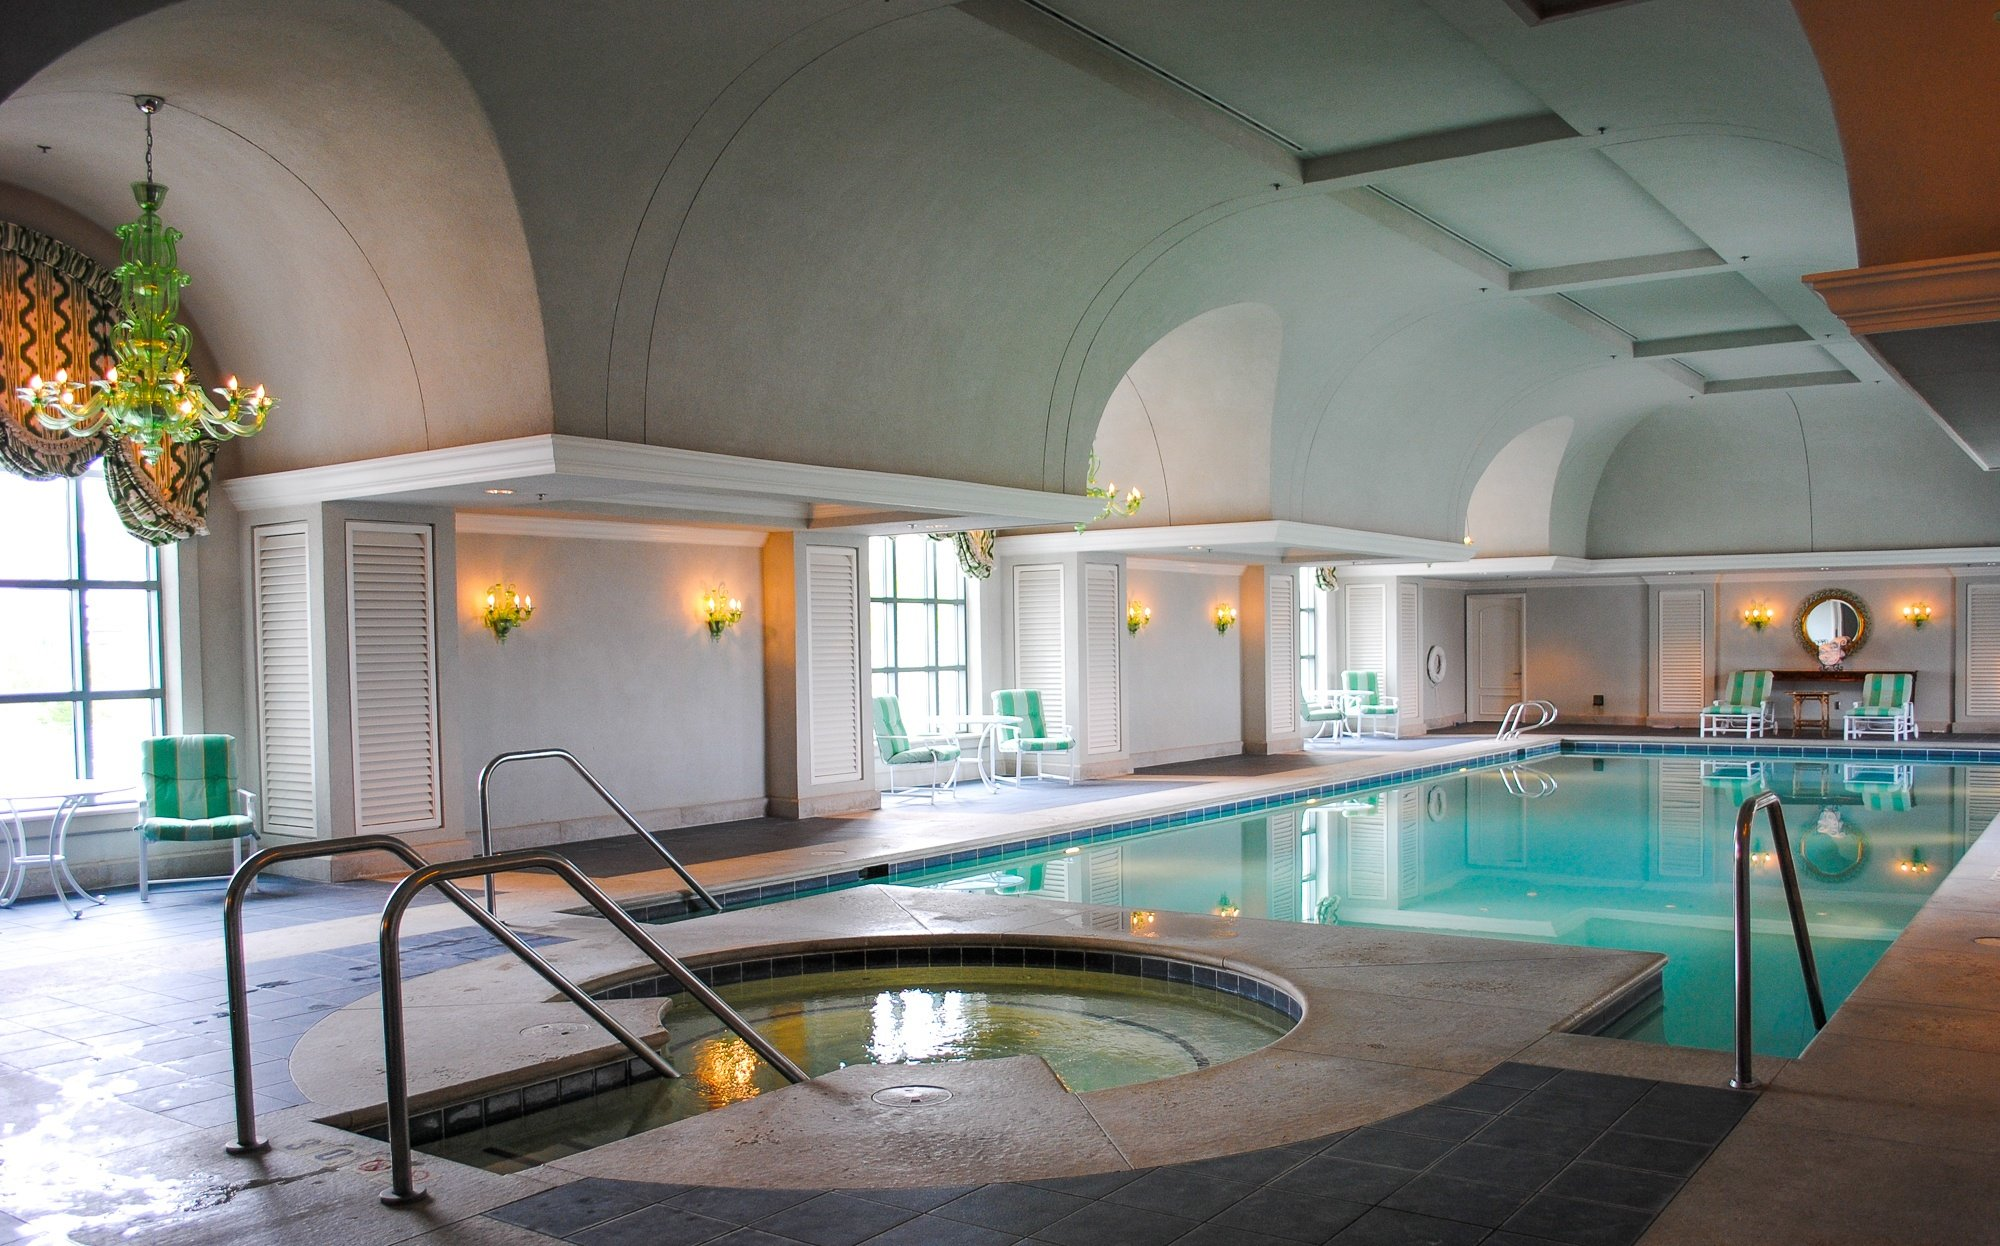 The indoor Grand Spa and Salon pool